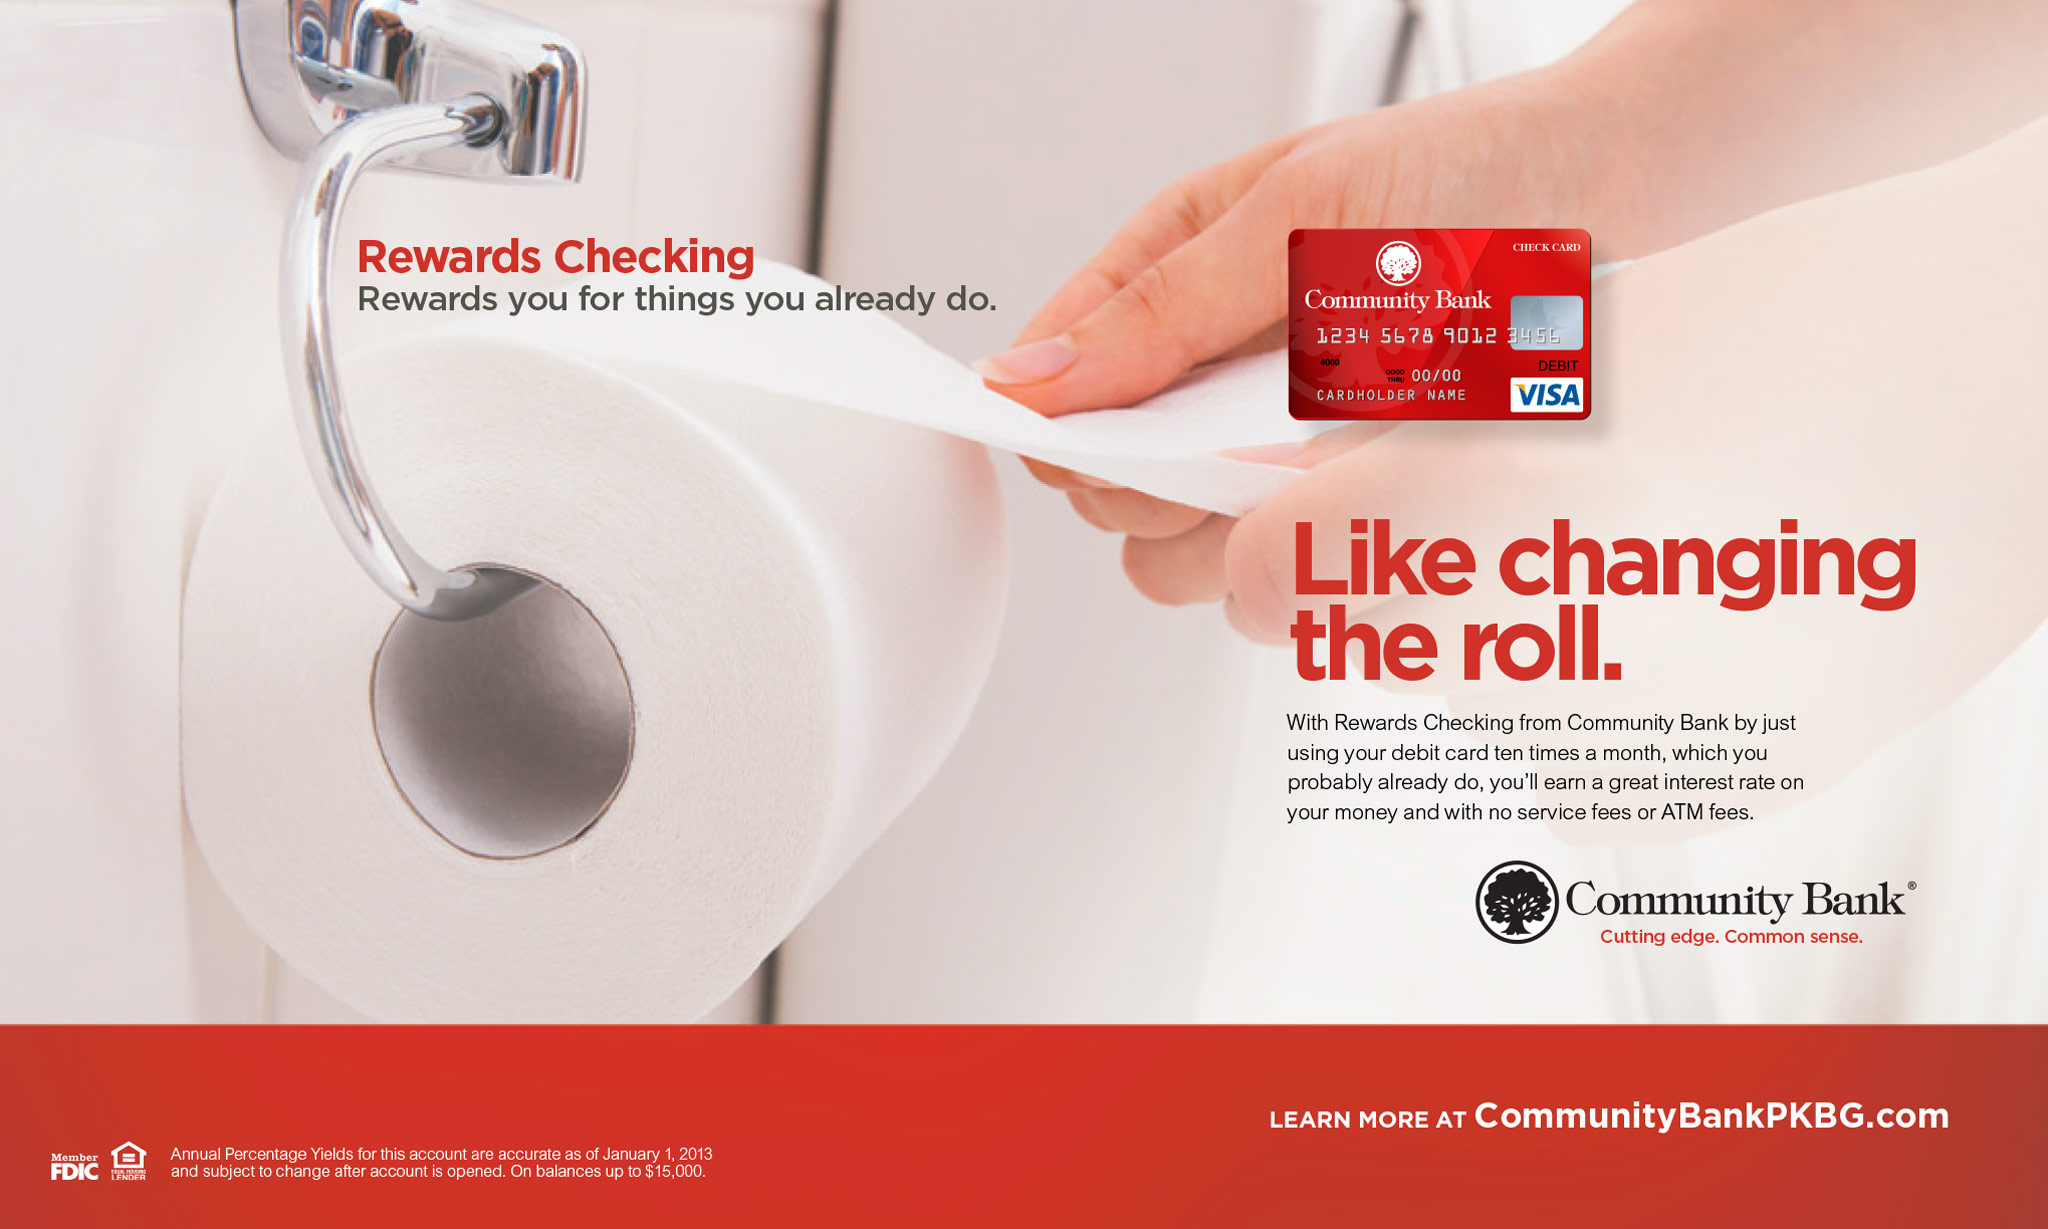 Community Bank, Rewards Checking: Print Ad